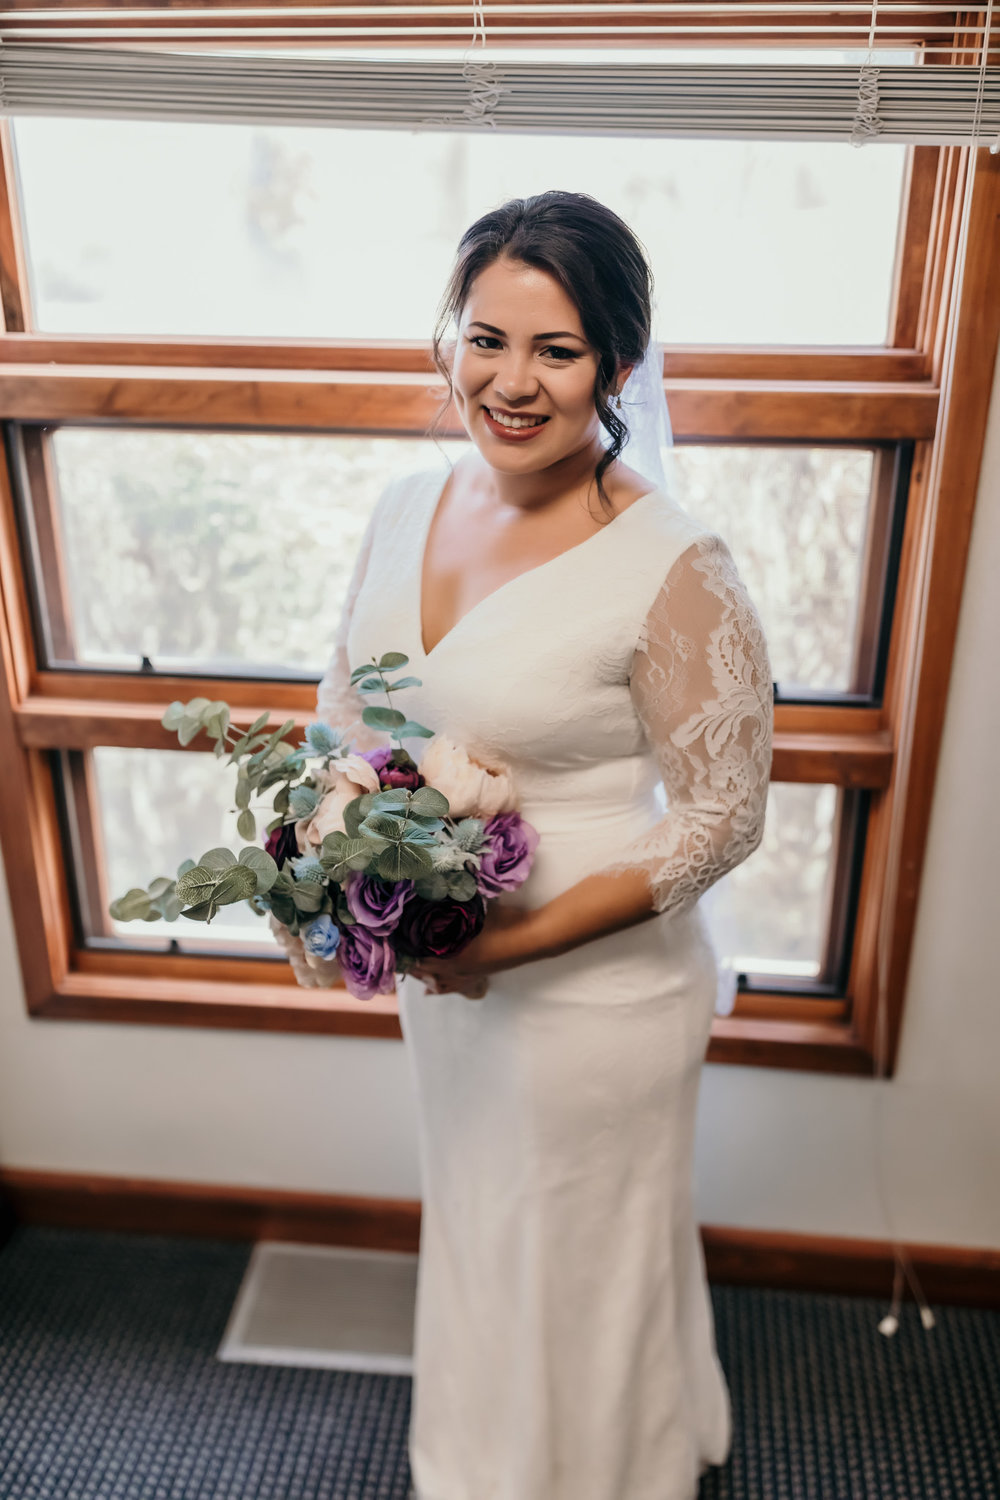 Bride Holding Flowers in Church